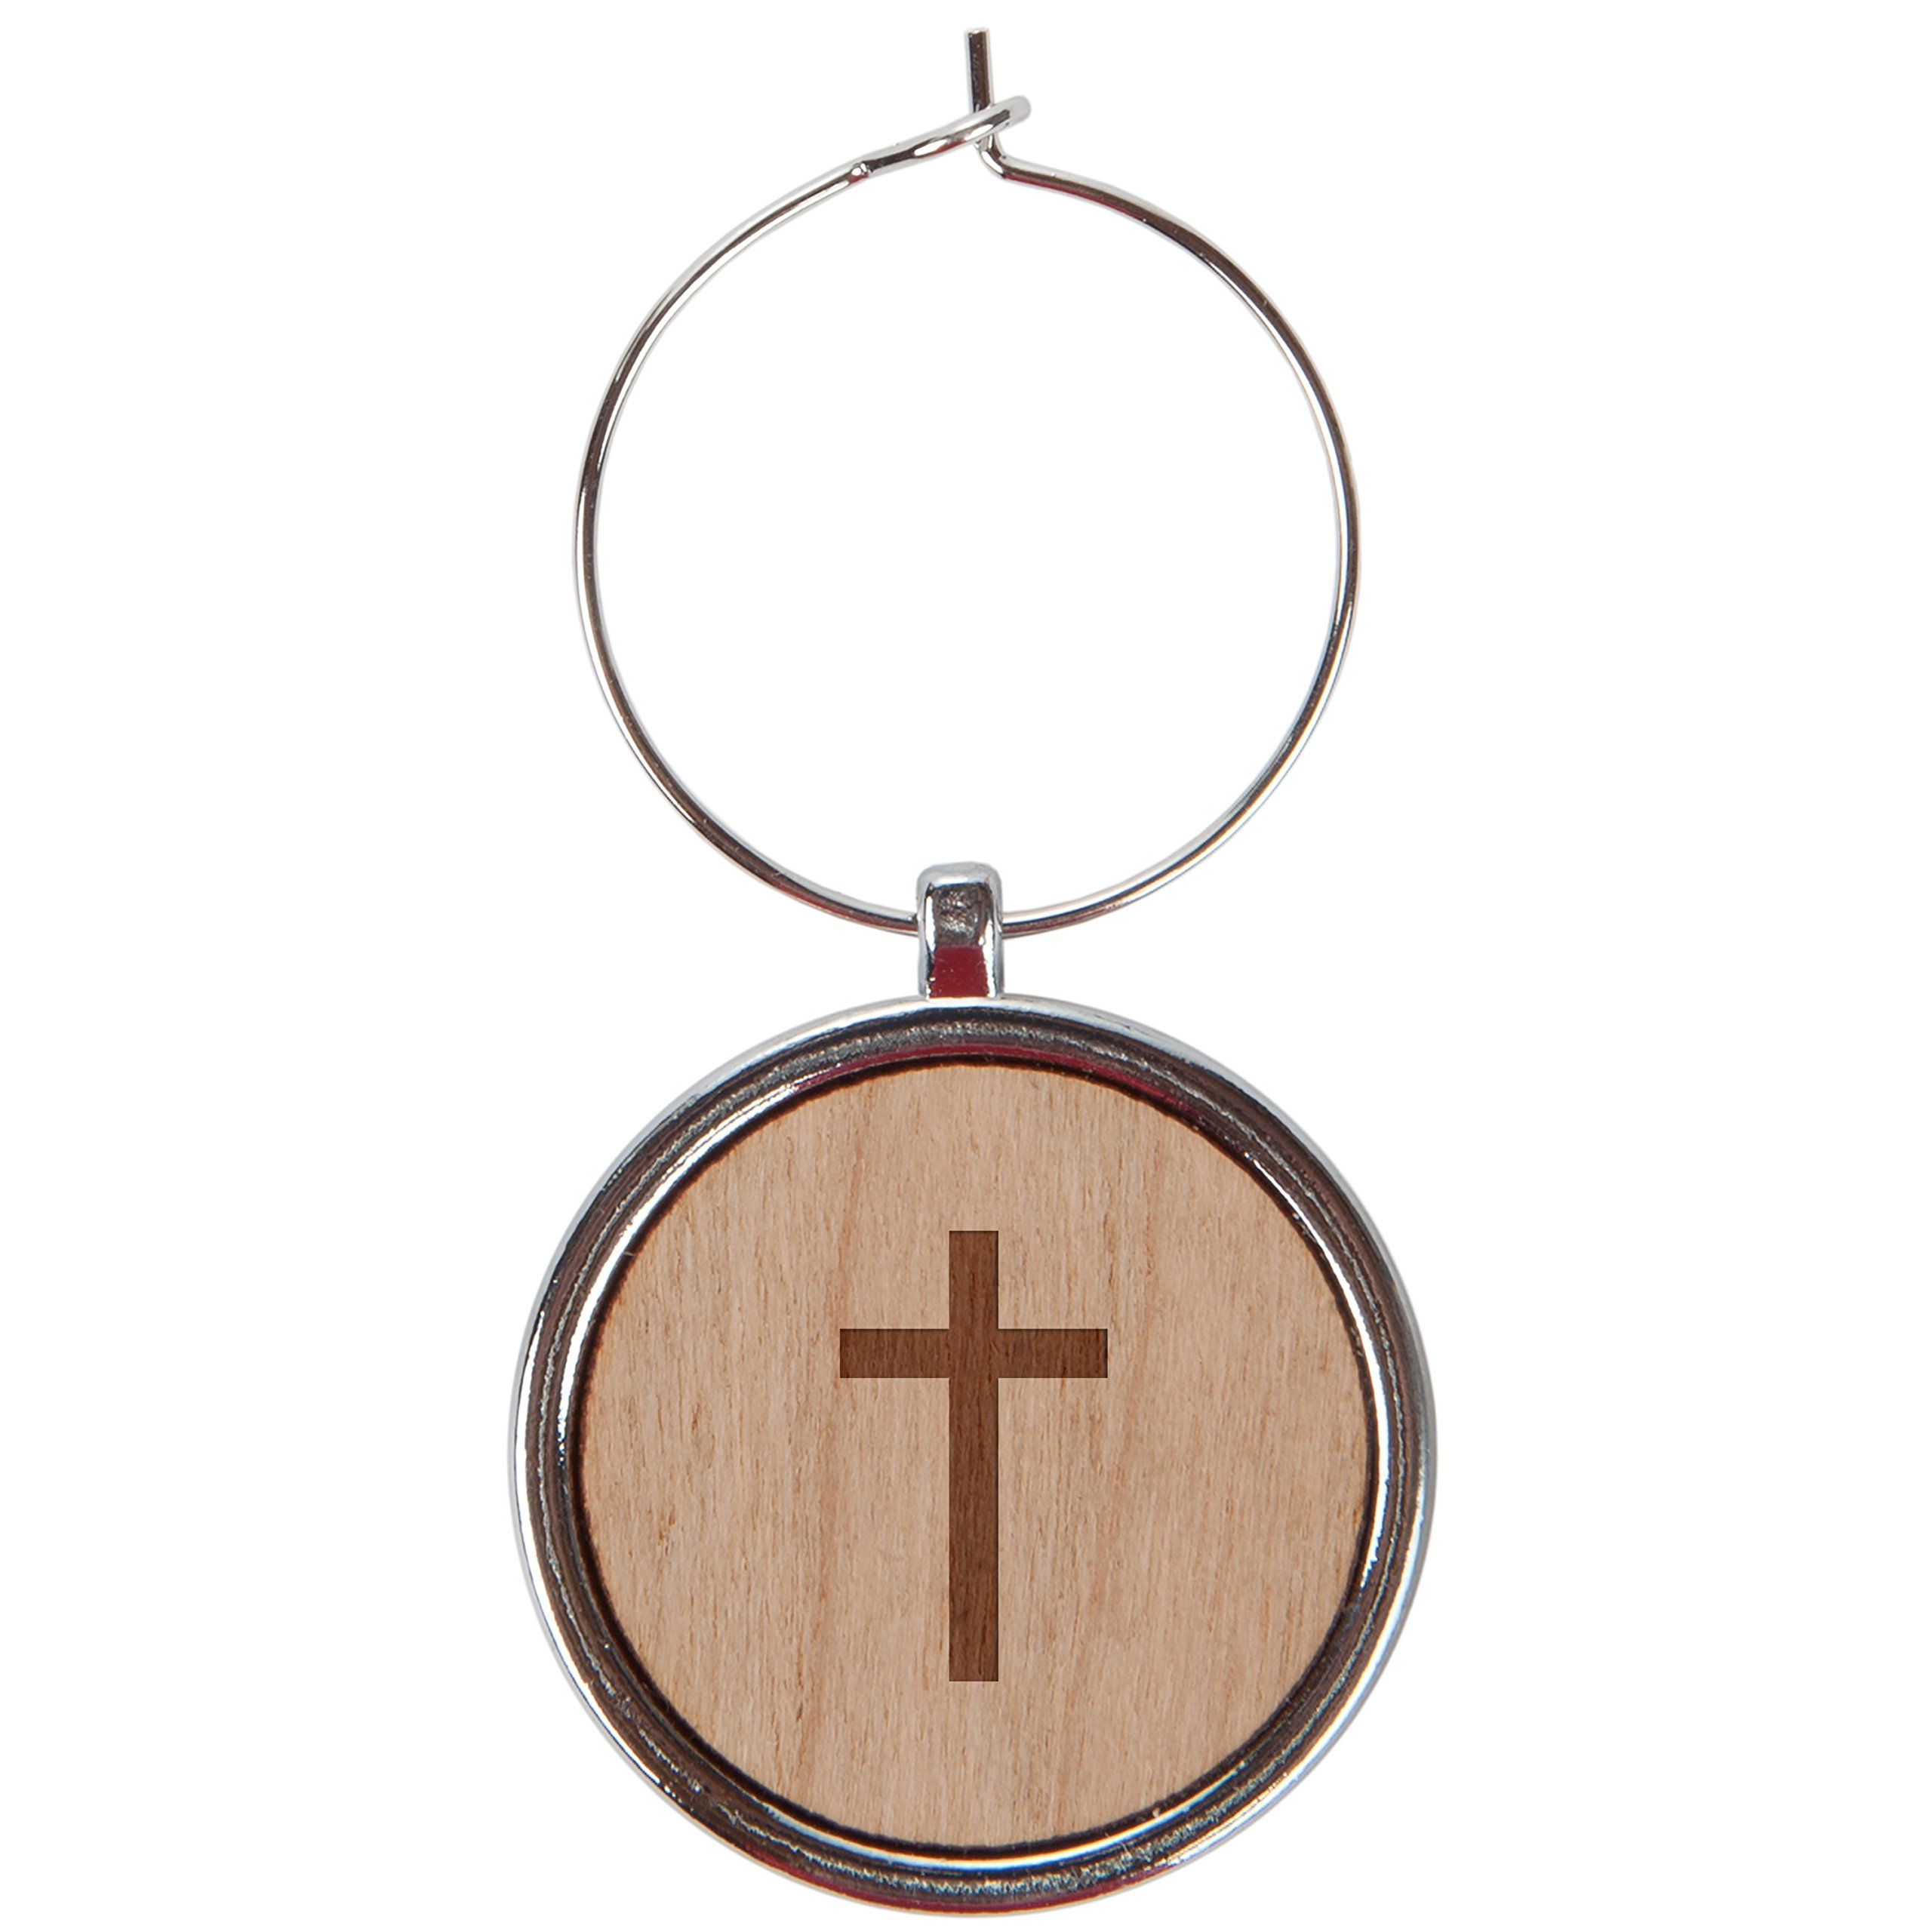 Christian Cross Wood Wine Glass Charms Set Of 6-1 Inch Laser Engraved Wine Glass Charms For Stemmed Wine Glasses - Wine Glass Charm Gift